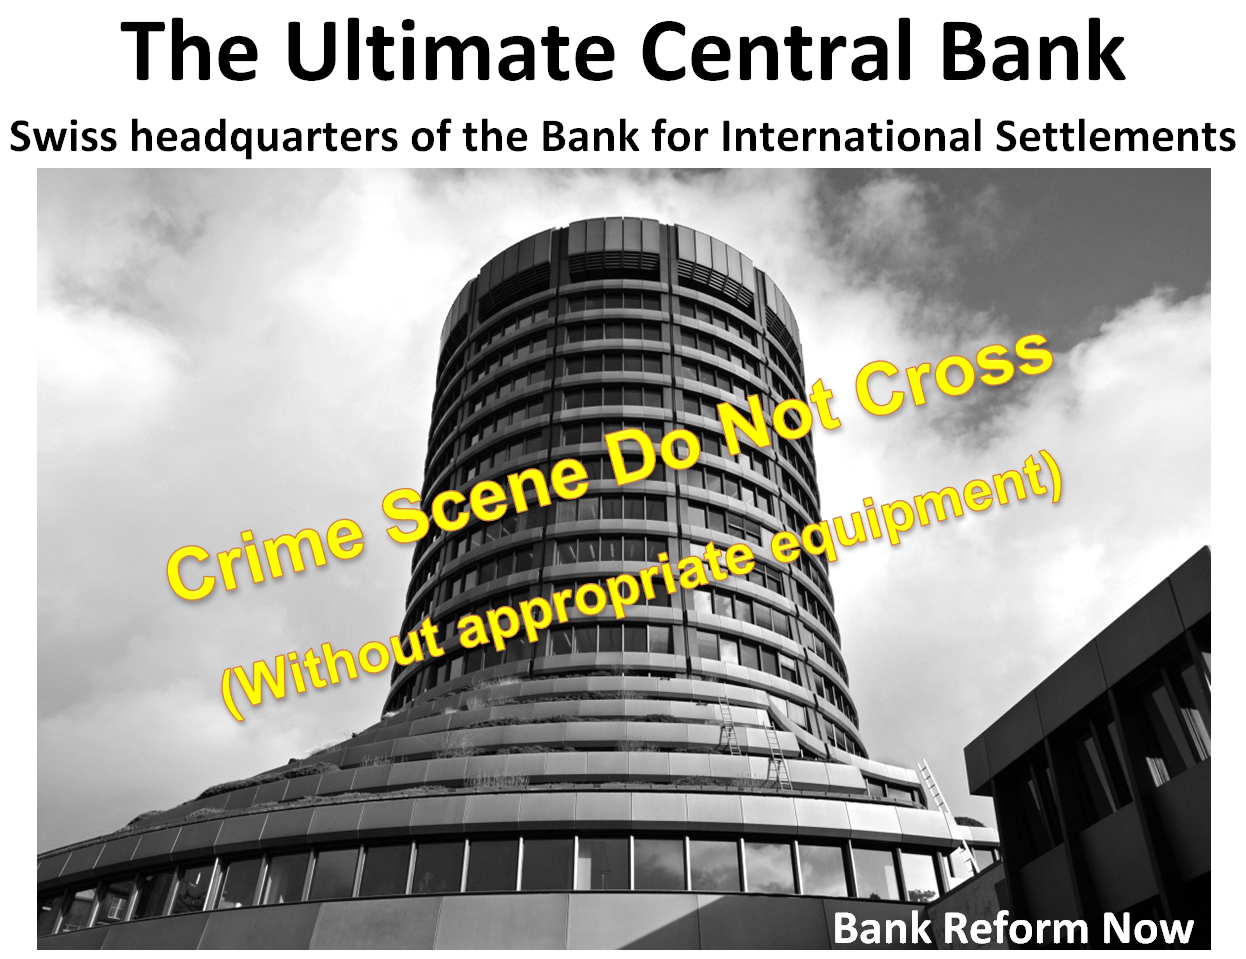 One Bank to Rule Them All: The Bank for International Settlements